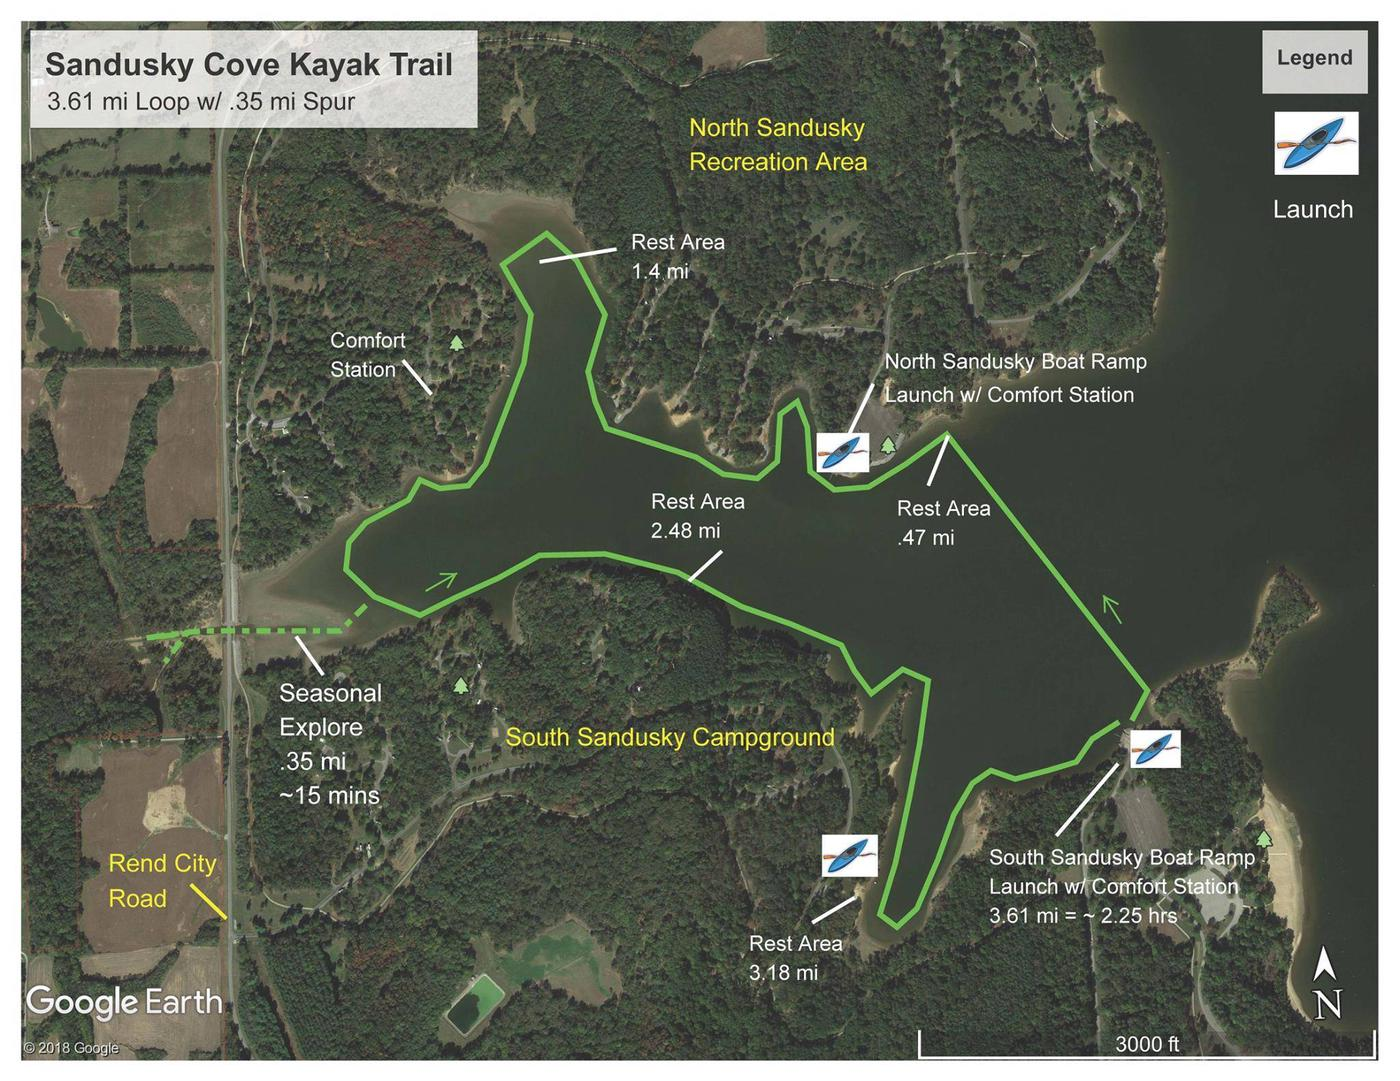 Sandusky Cove Kayak Trail